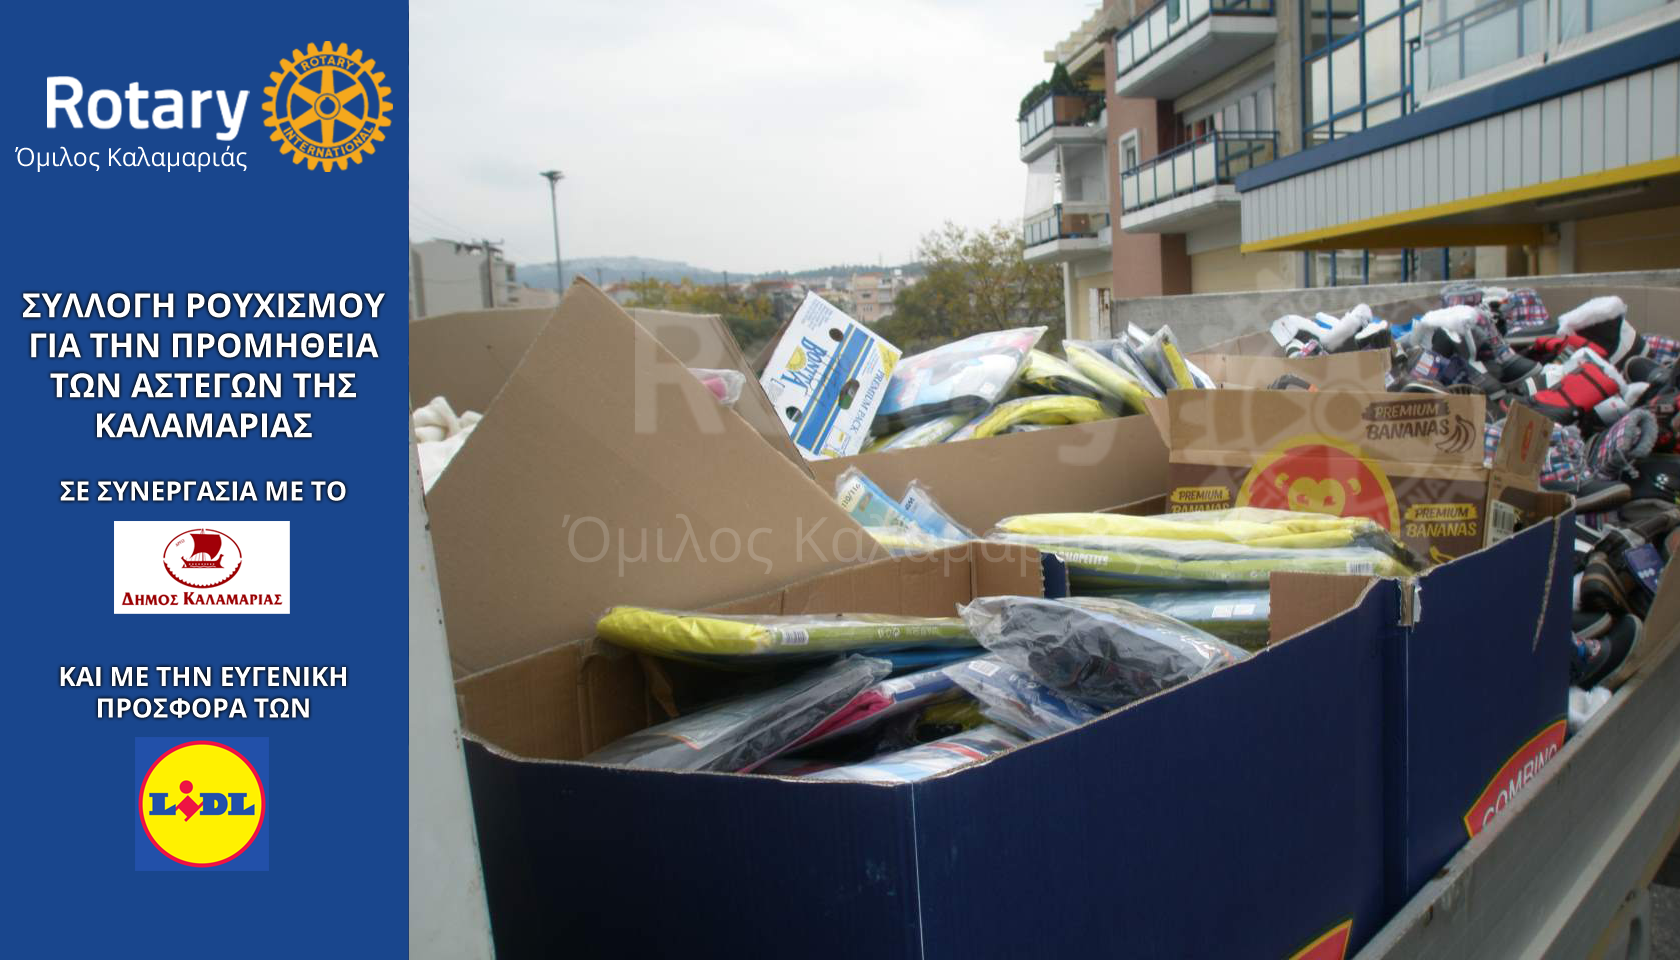 Rotary-Club-Kalamaria-and-Lidl-give-clothes-for-homeles-010